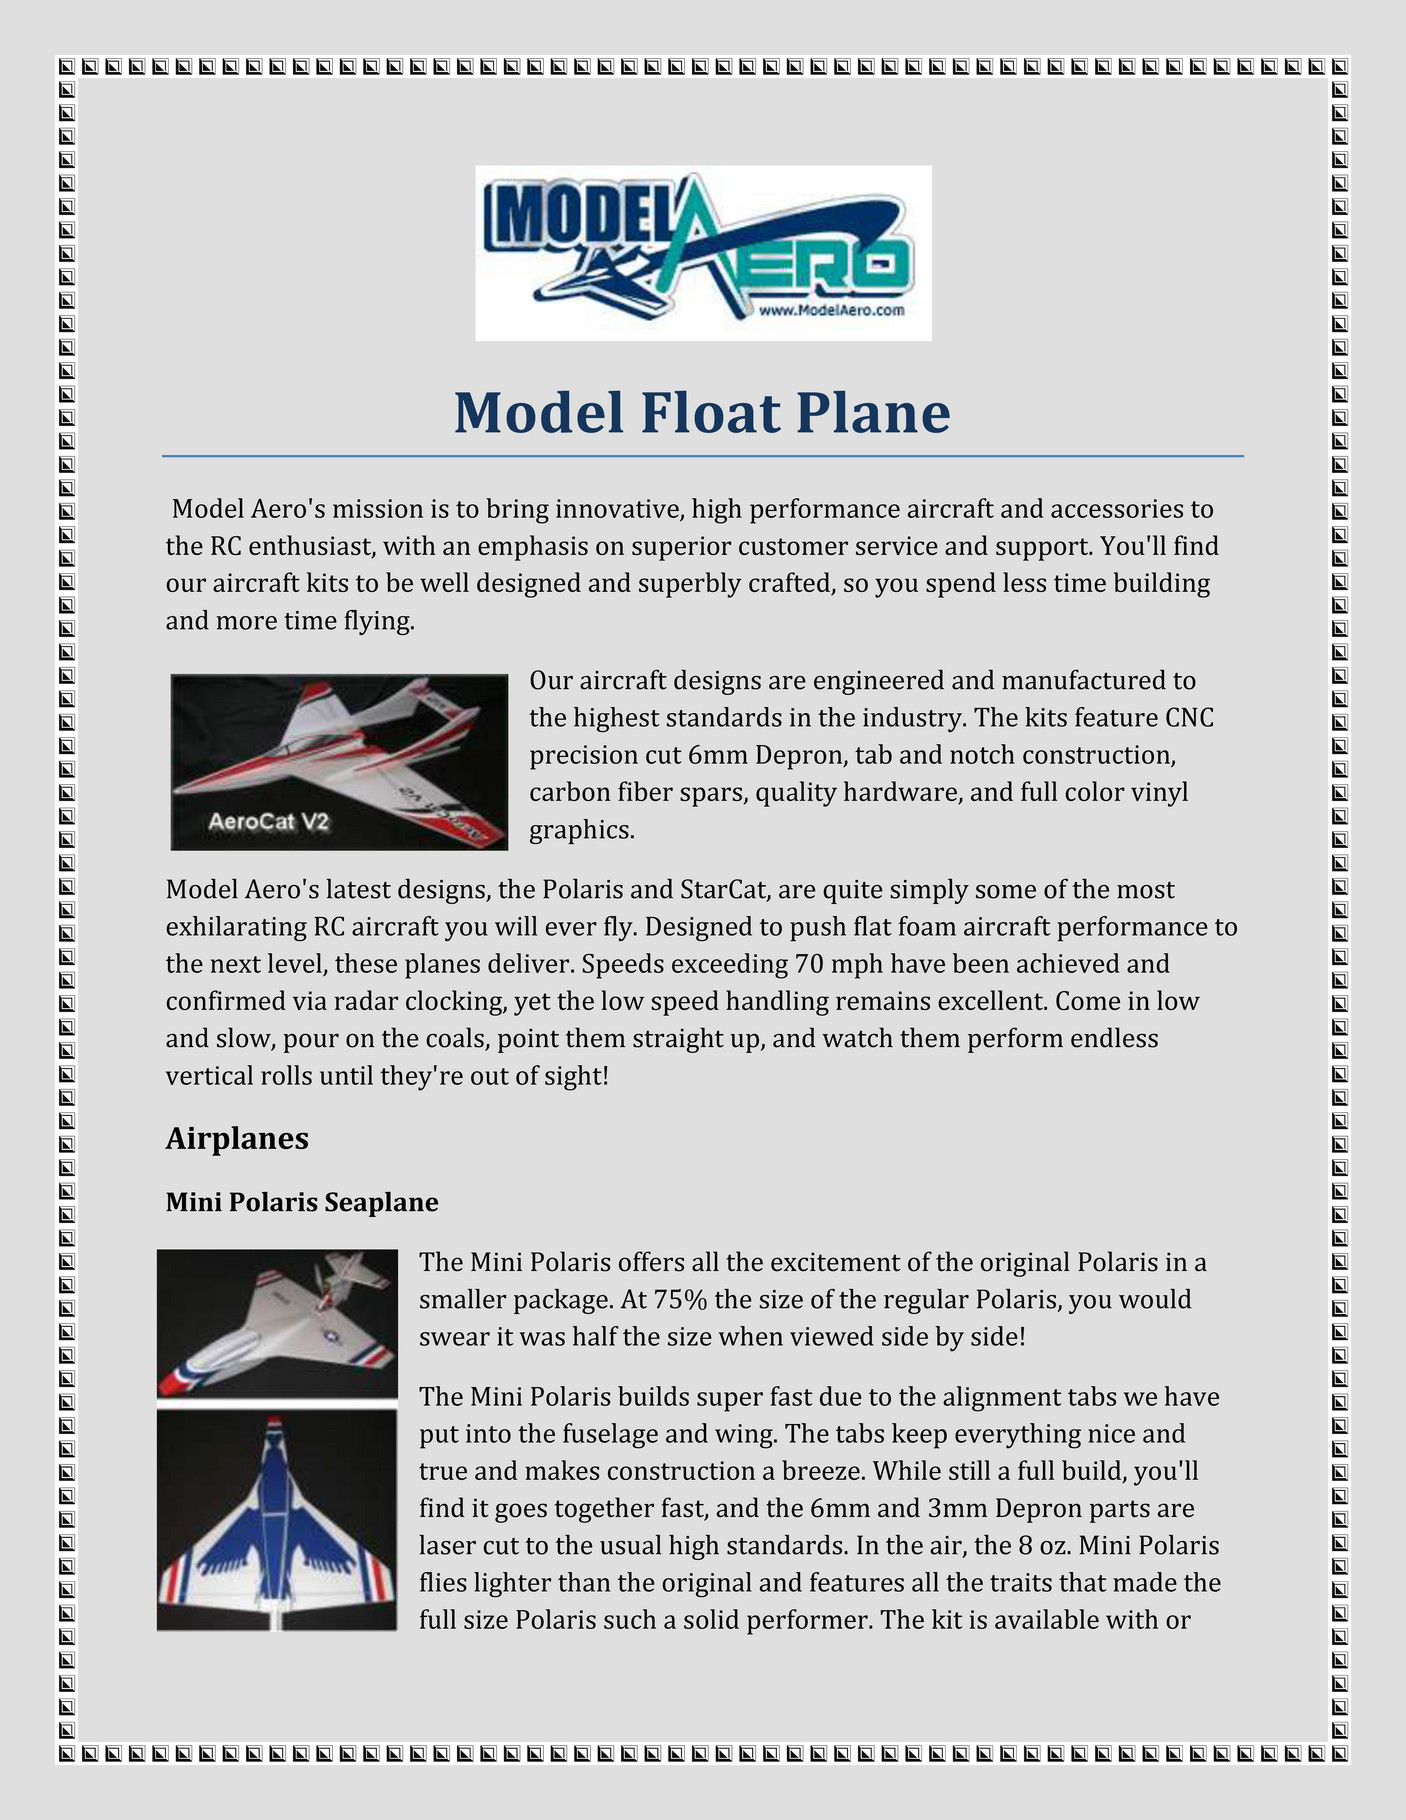 modelaero - Model Float Plane - Page 2-3 - Created with